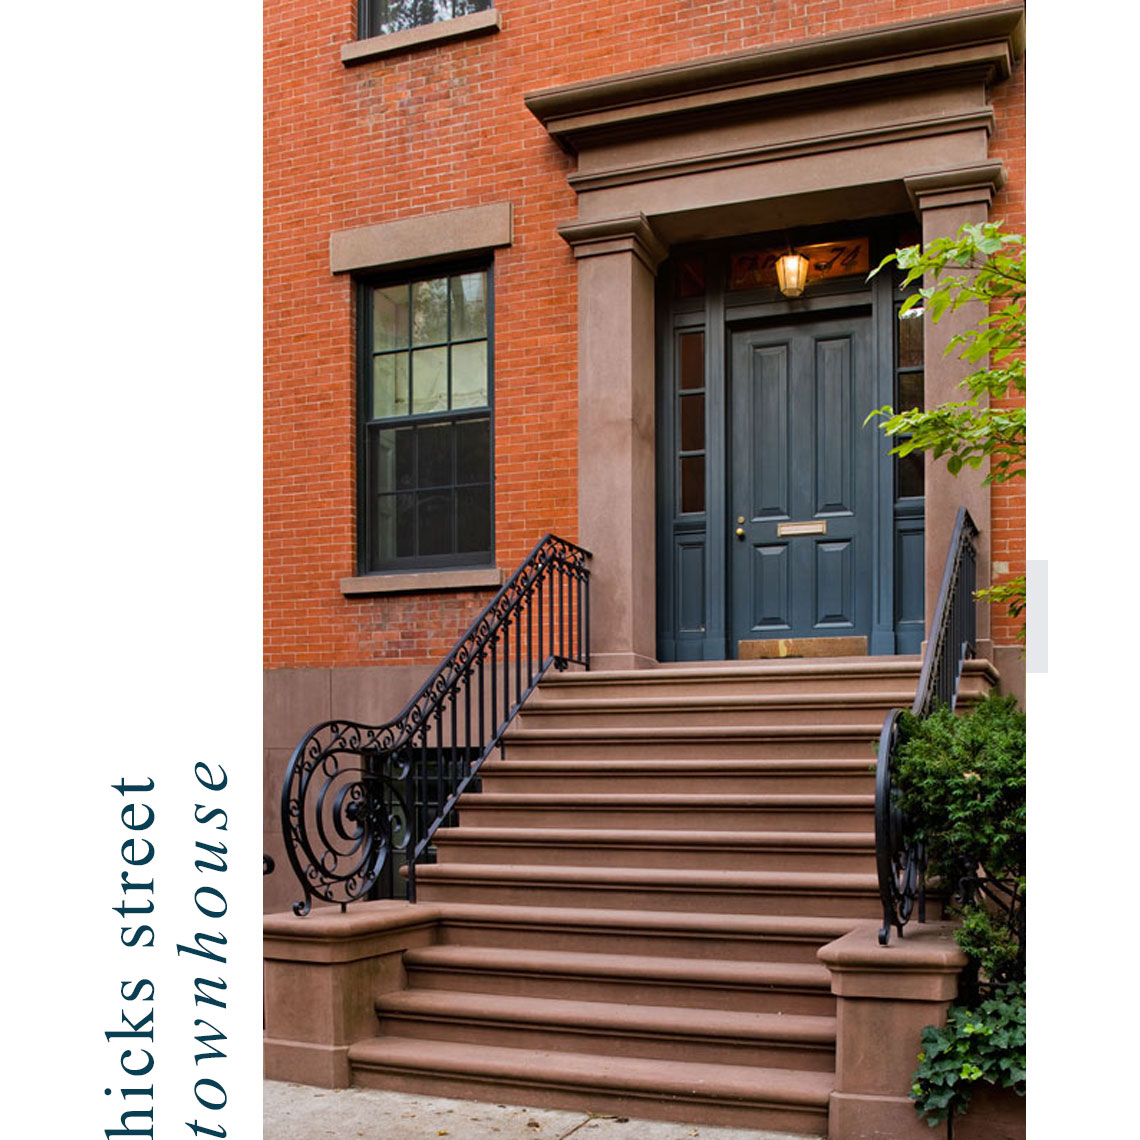 Hicks Street Townhouse